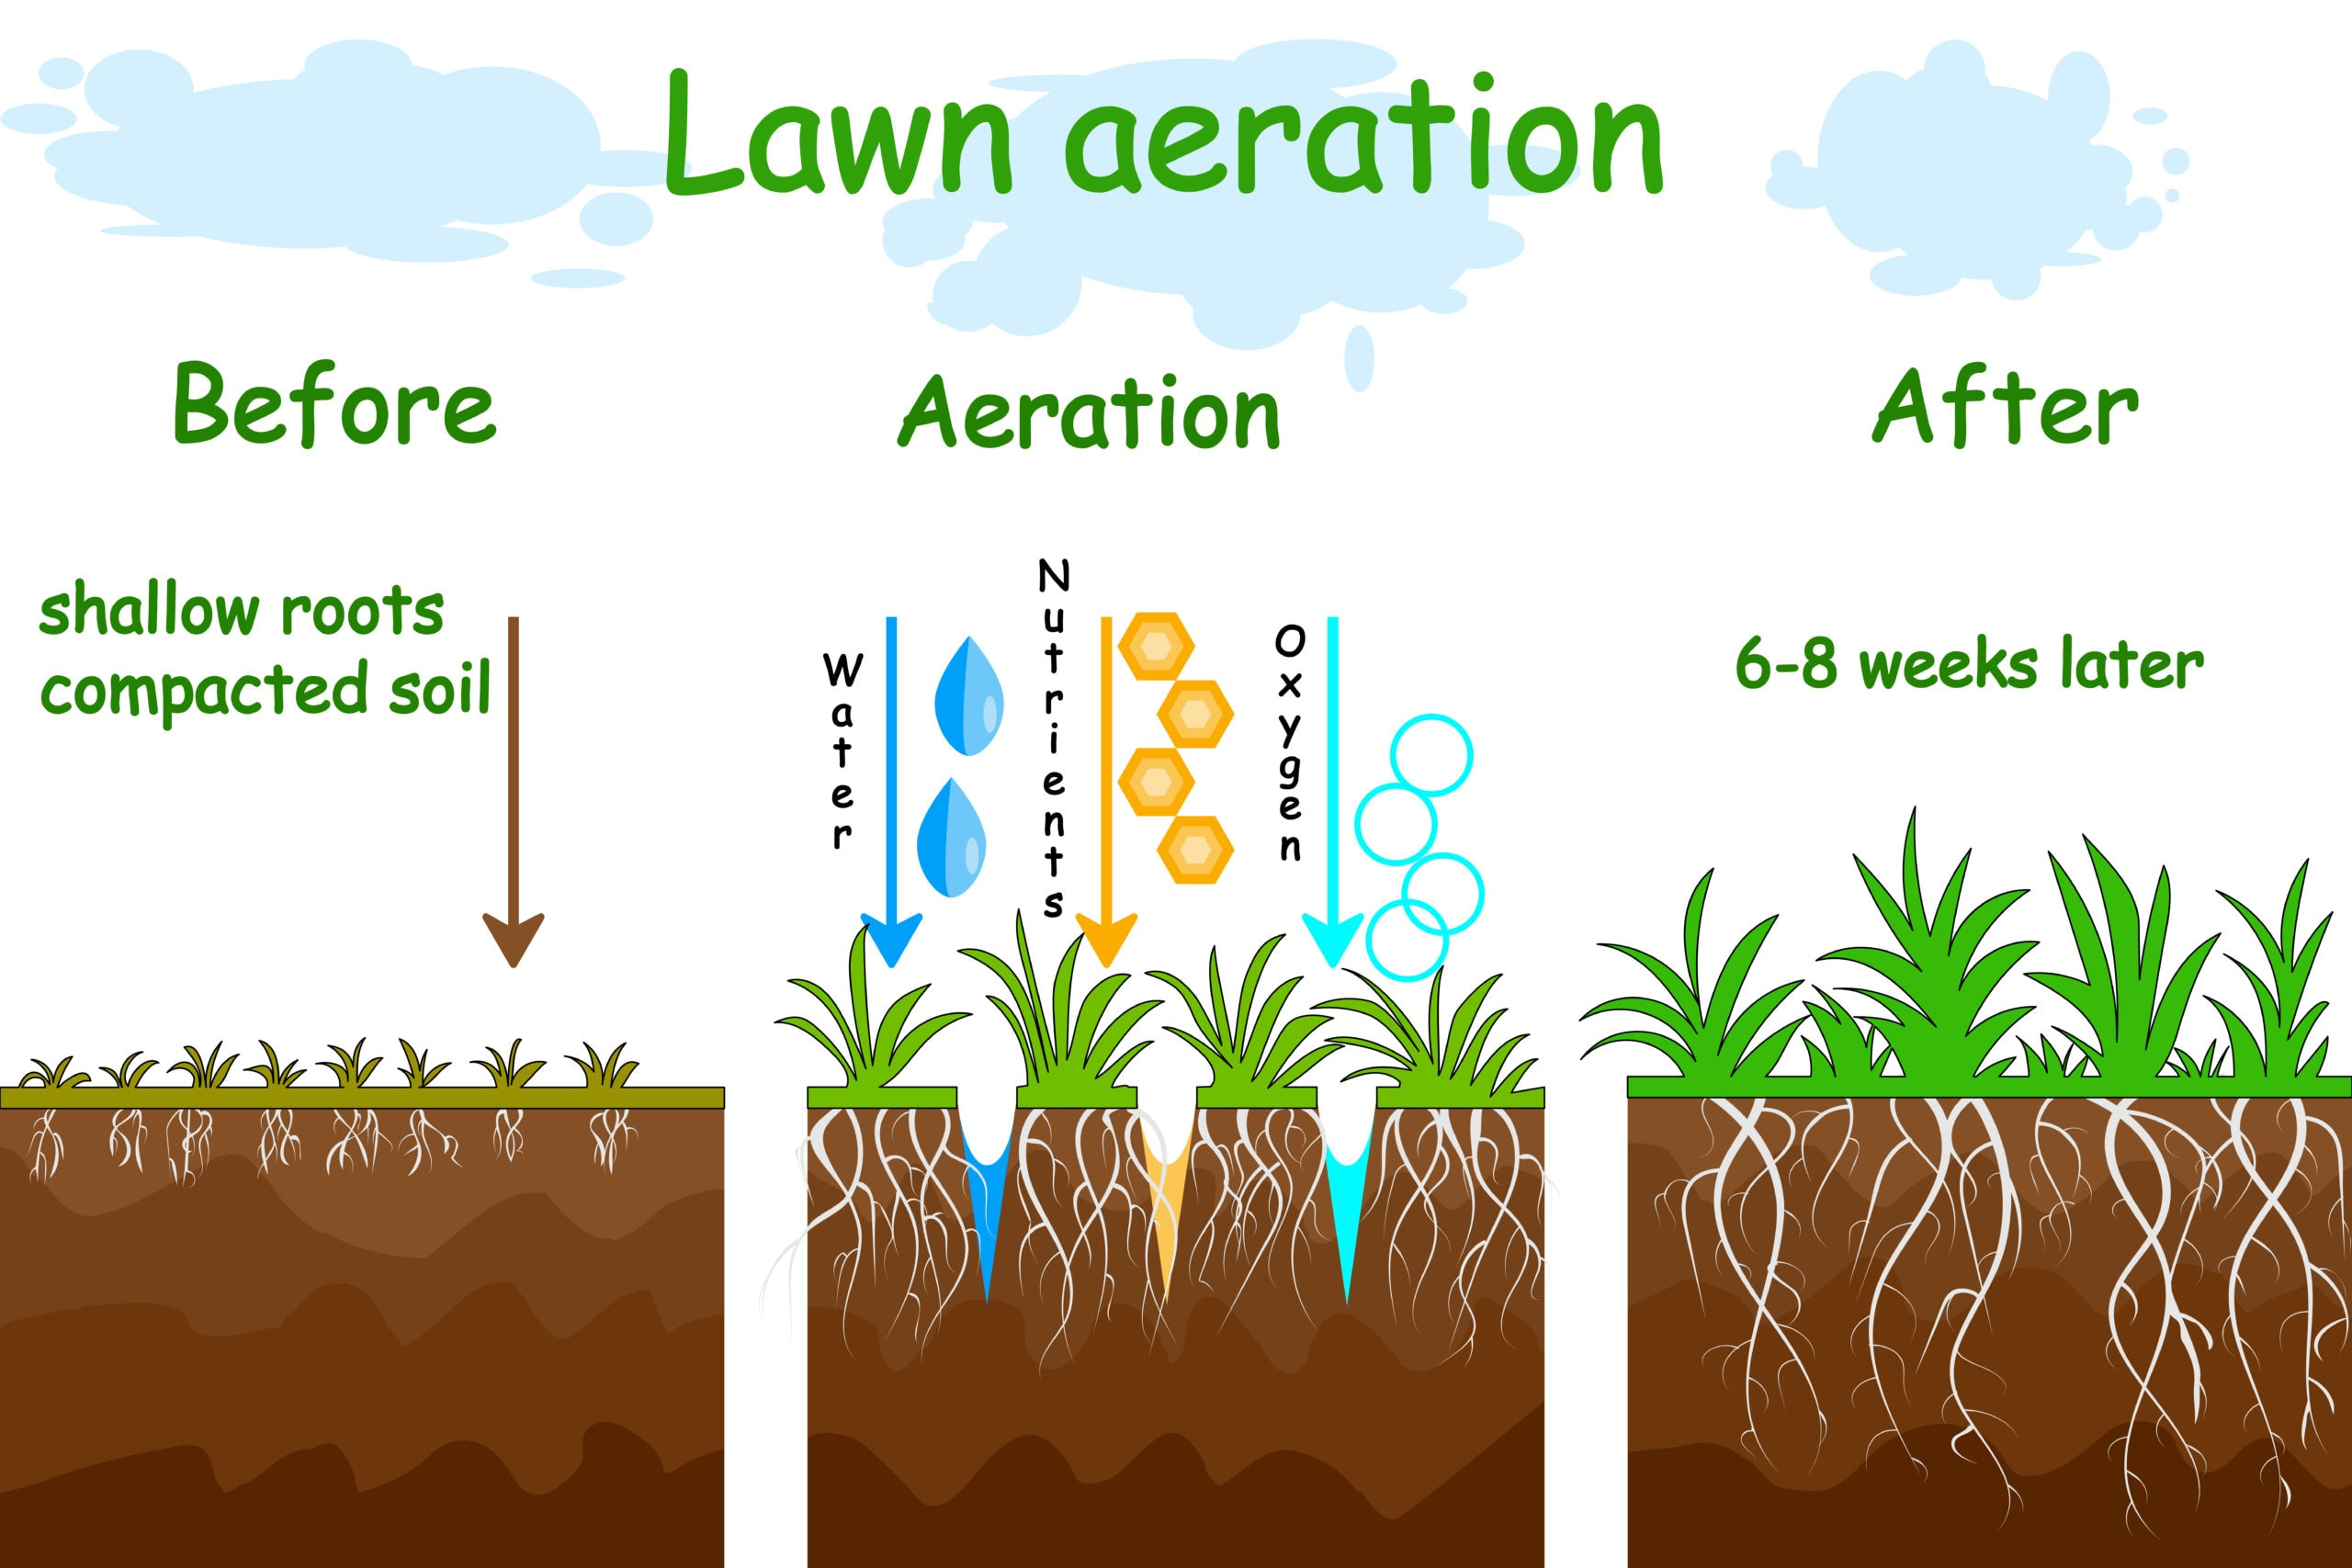 Lawn aeration stage illustration. Before and after aeration.